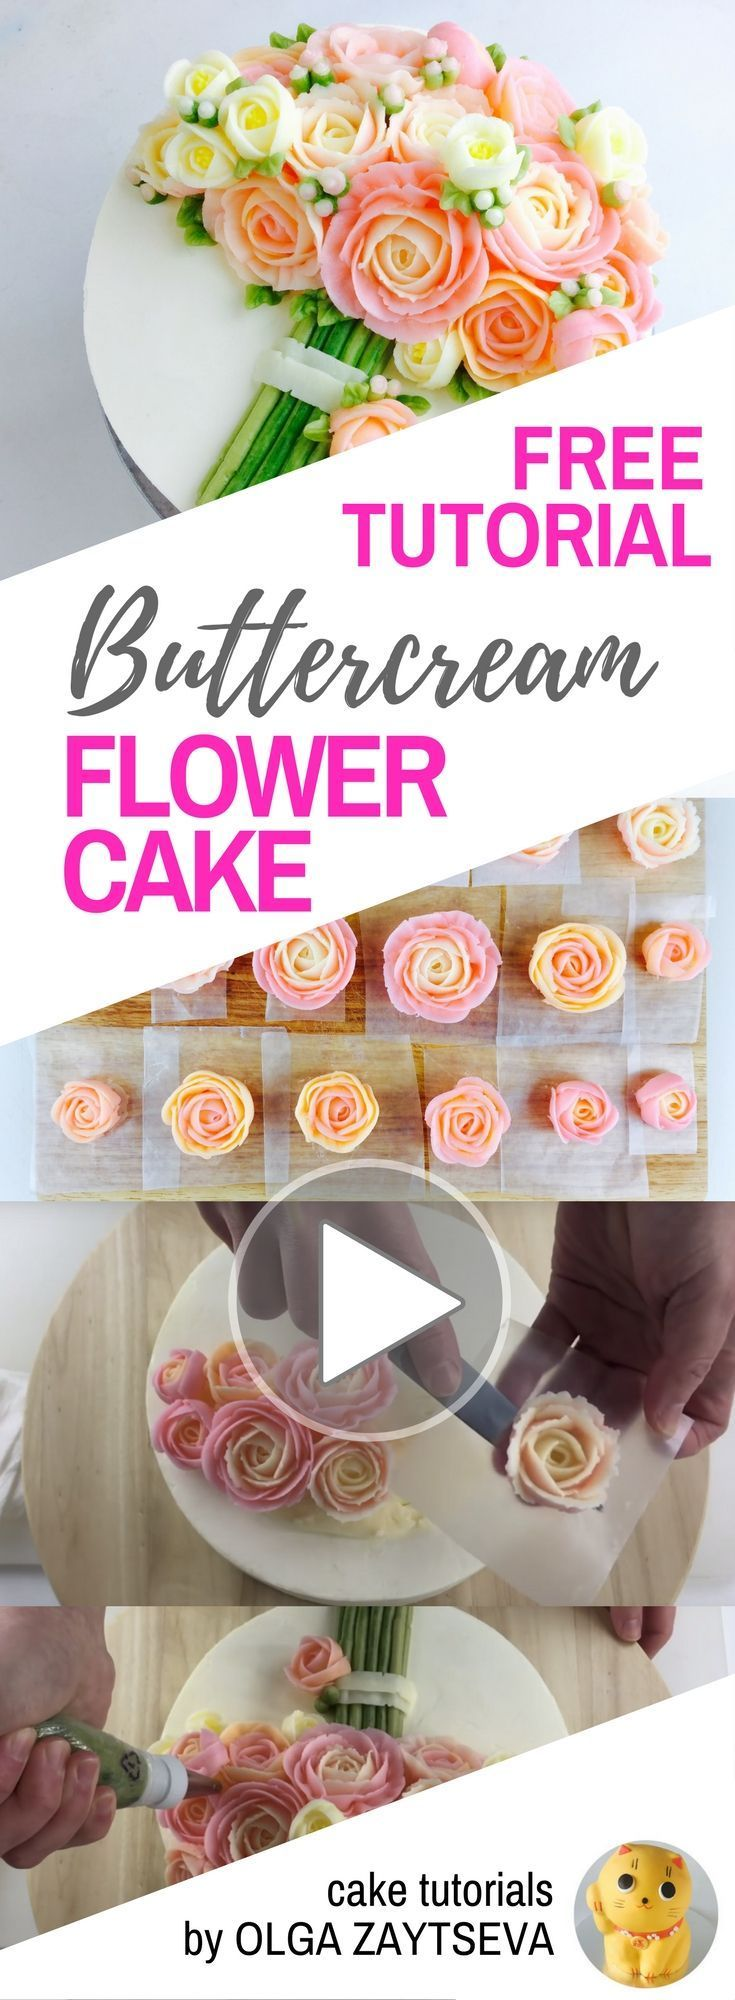 HOT CAKE TRENDS How to make Pink Roses Buttercream bouquet cake - Cake decorating tutorial by Olga Zaytseva. Learn how to pipe tiny jasmine, roses and buds and assemble a buttercream flower bouquet cake in variety of pink shades. #cakedecorating #cakedecoratingtechniques